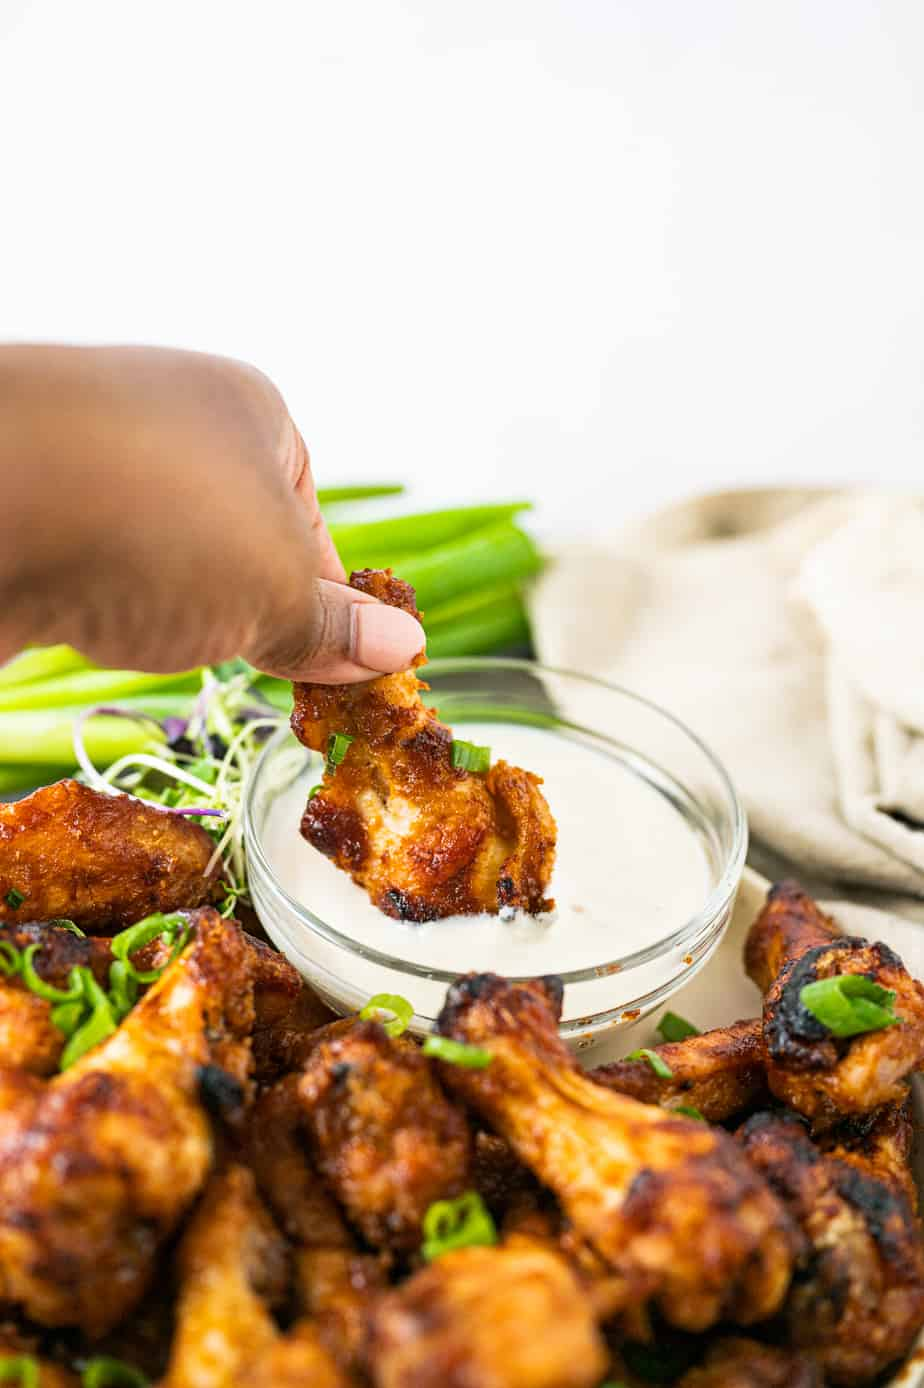 Miso wings dipped in ranch dressing